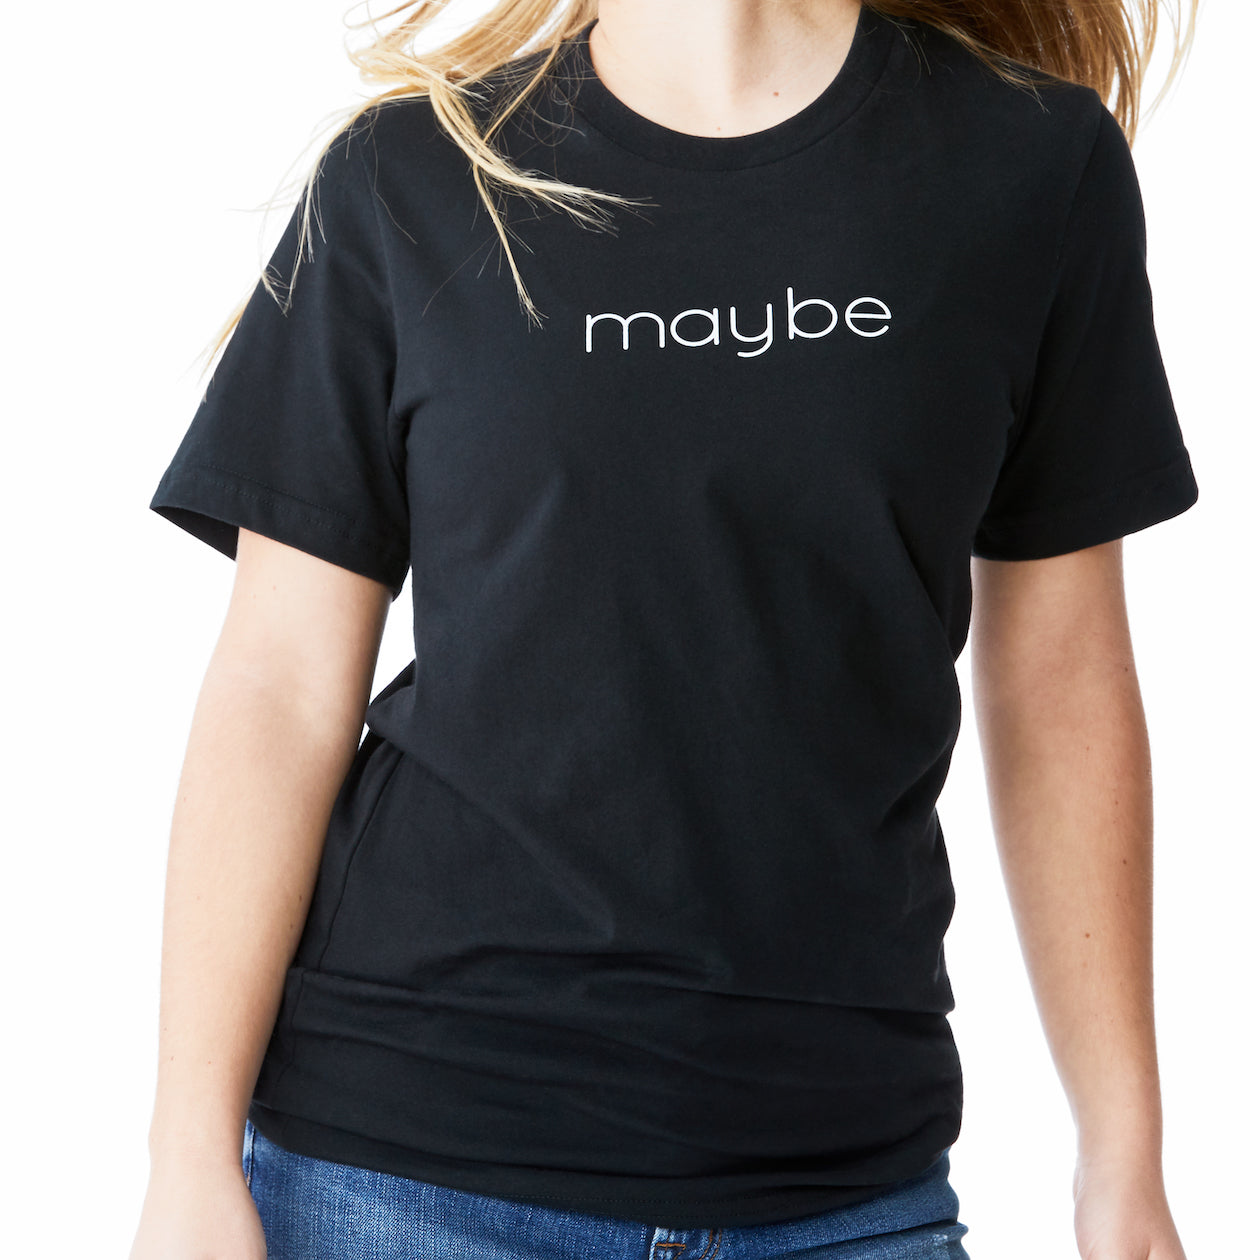 c'est beau1872 – Maybe Logo Tee in Black